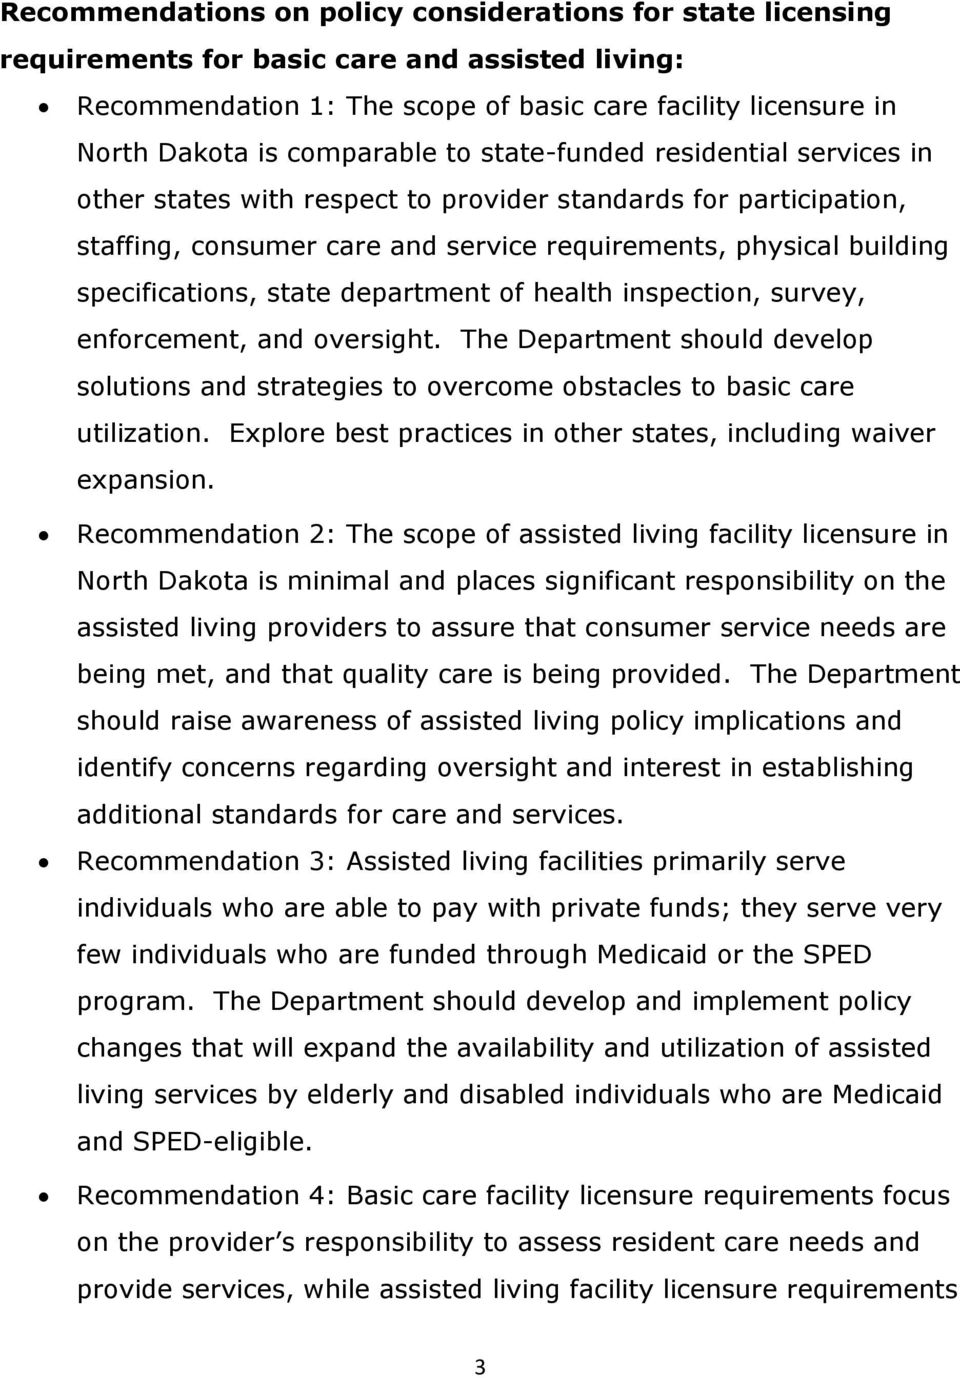 specifications, state department of health inspection, survey, enforcement, and oversight. The Department should develop solutions and strategies to overcome obstacles to basic care utilization.